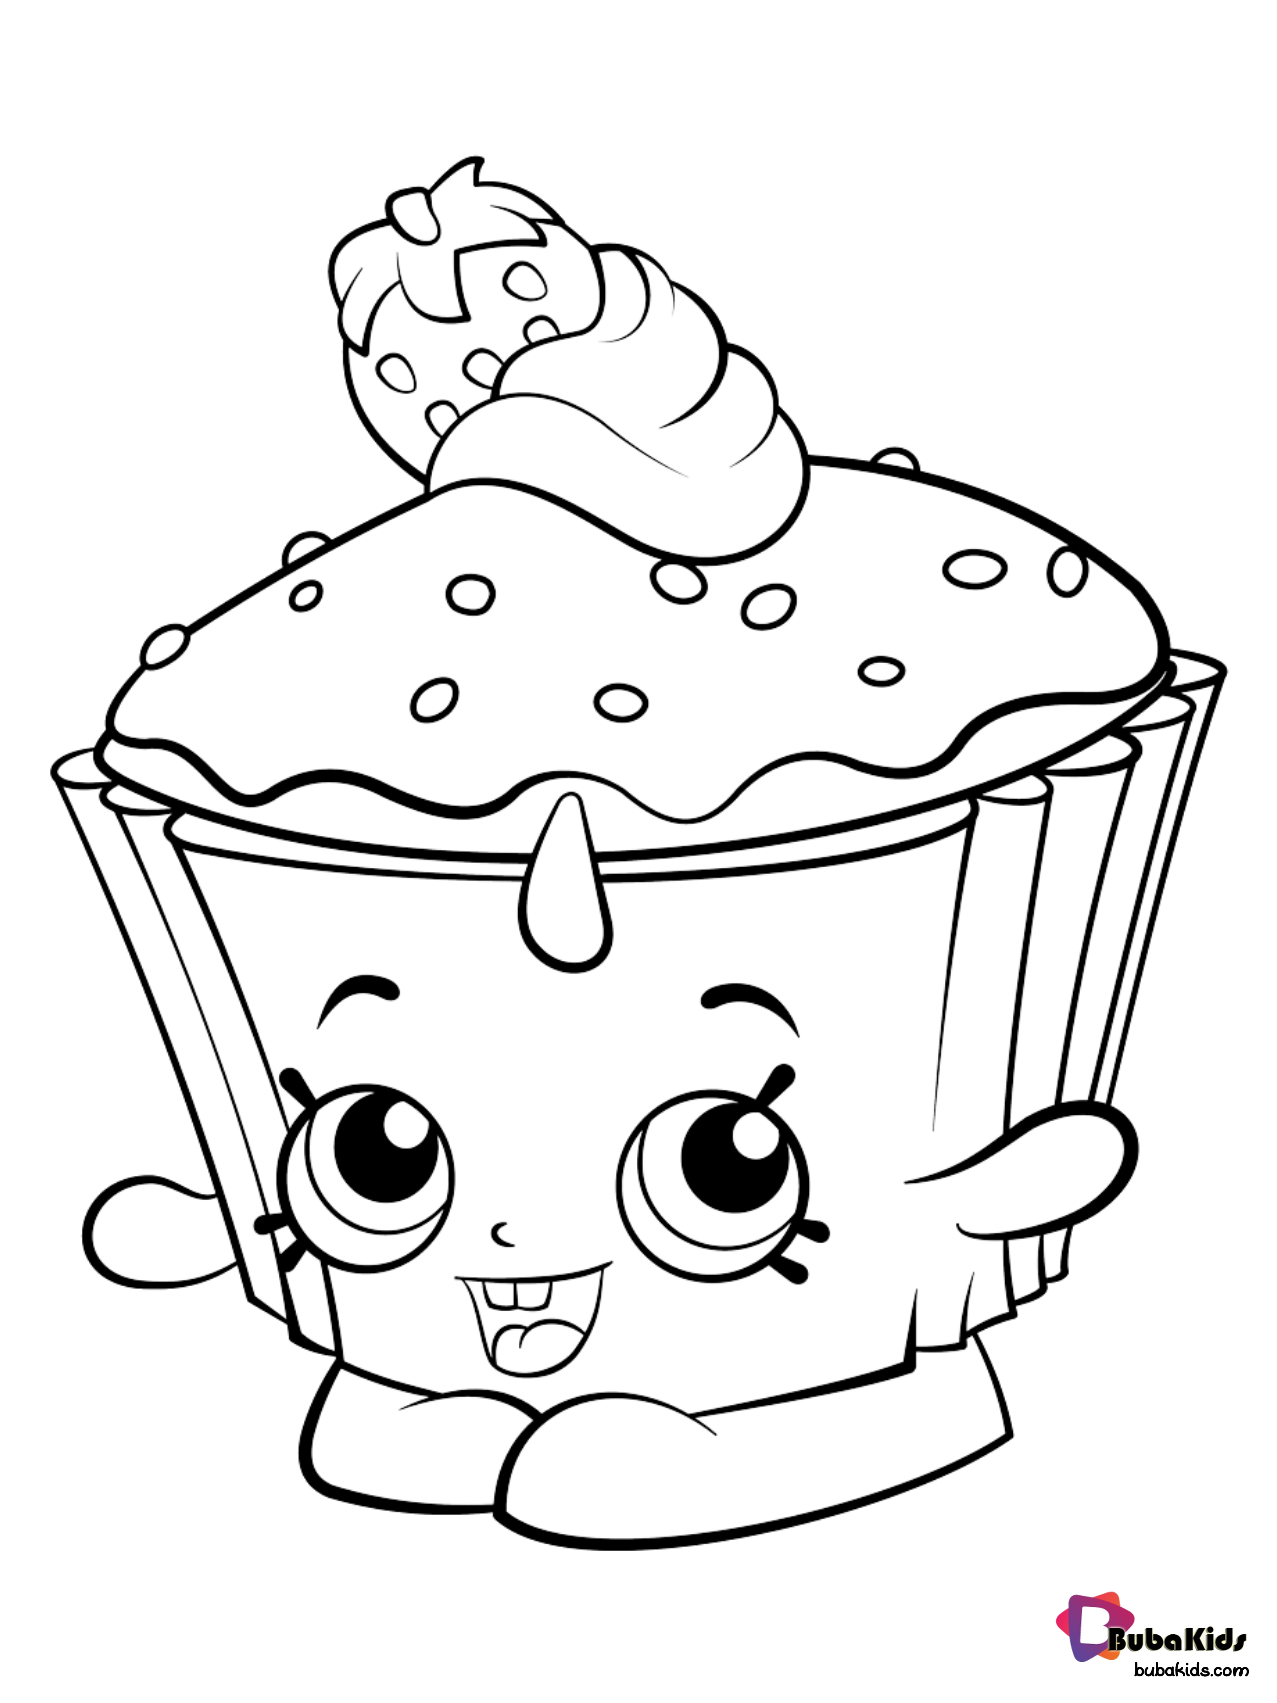 Free Download Strawberry Cup Cake Coloring Page For Preschoolers Collection Of Cartoon C Cupcake Coloring Pages Cartoon Coloring Pages Shopkin Coloring Pages